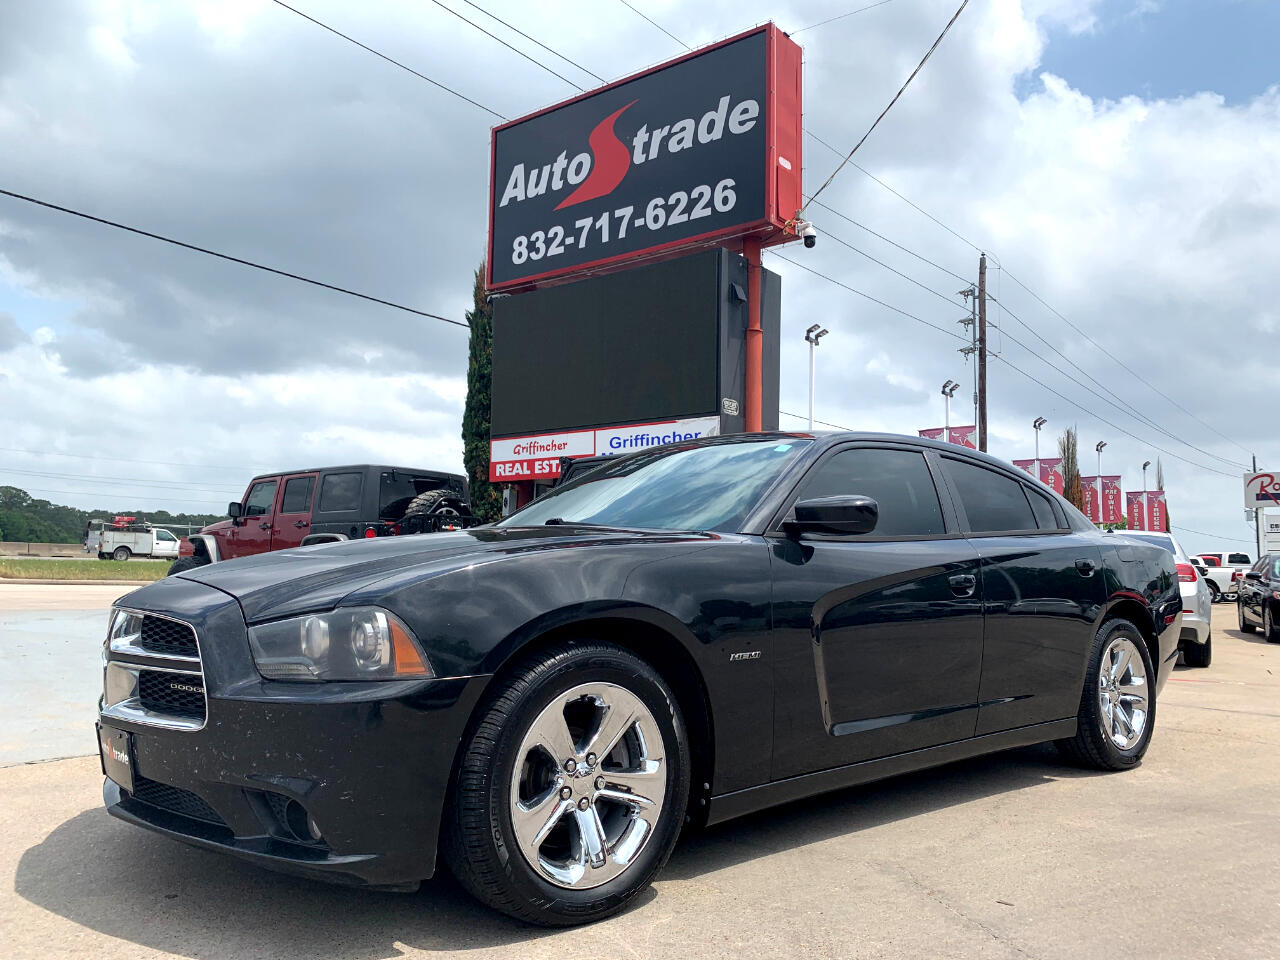 Dodge Charger 4dr Sdn RT RWD 2013